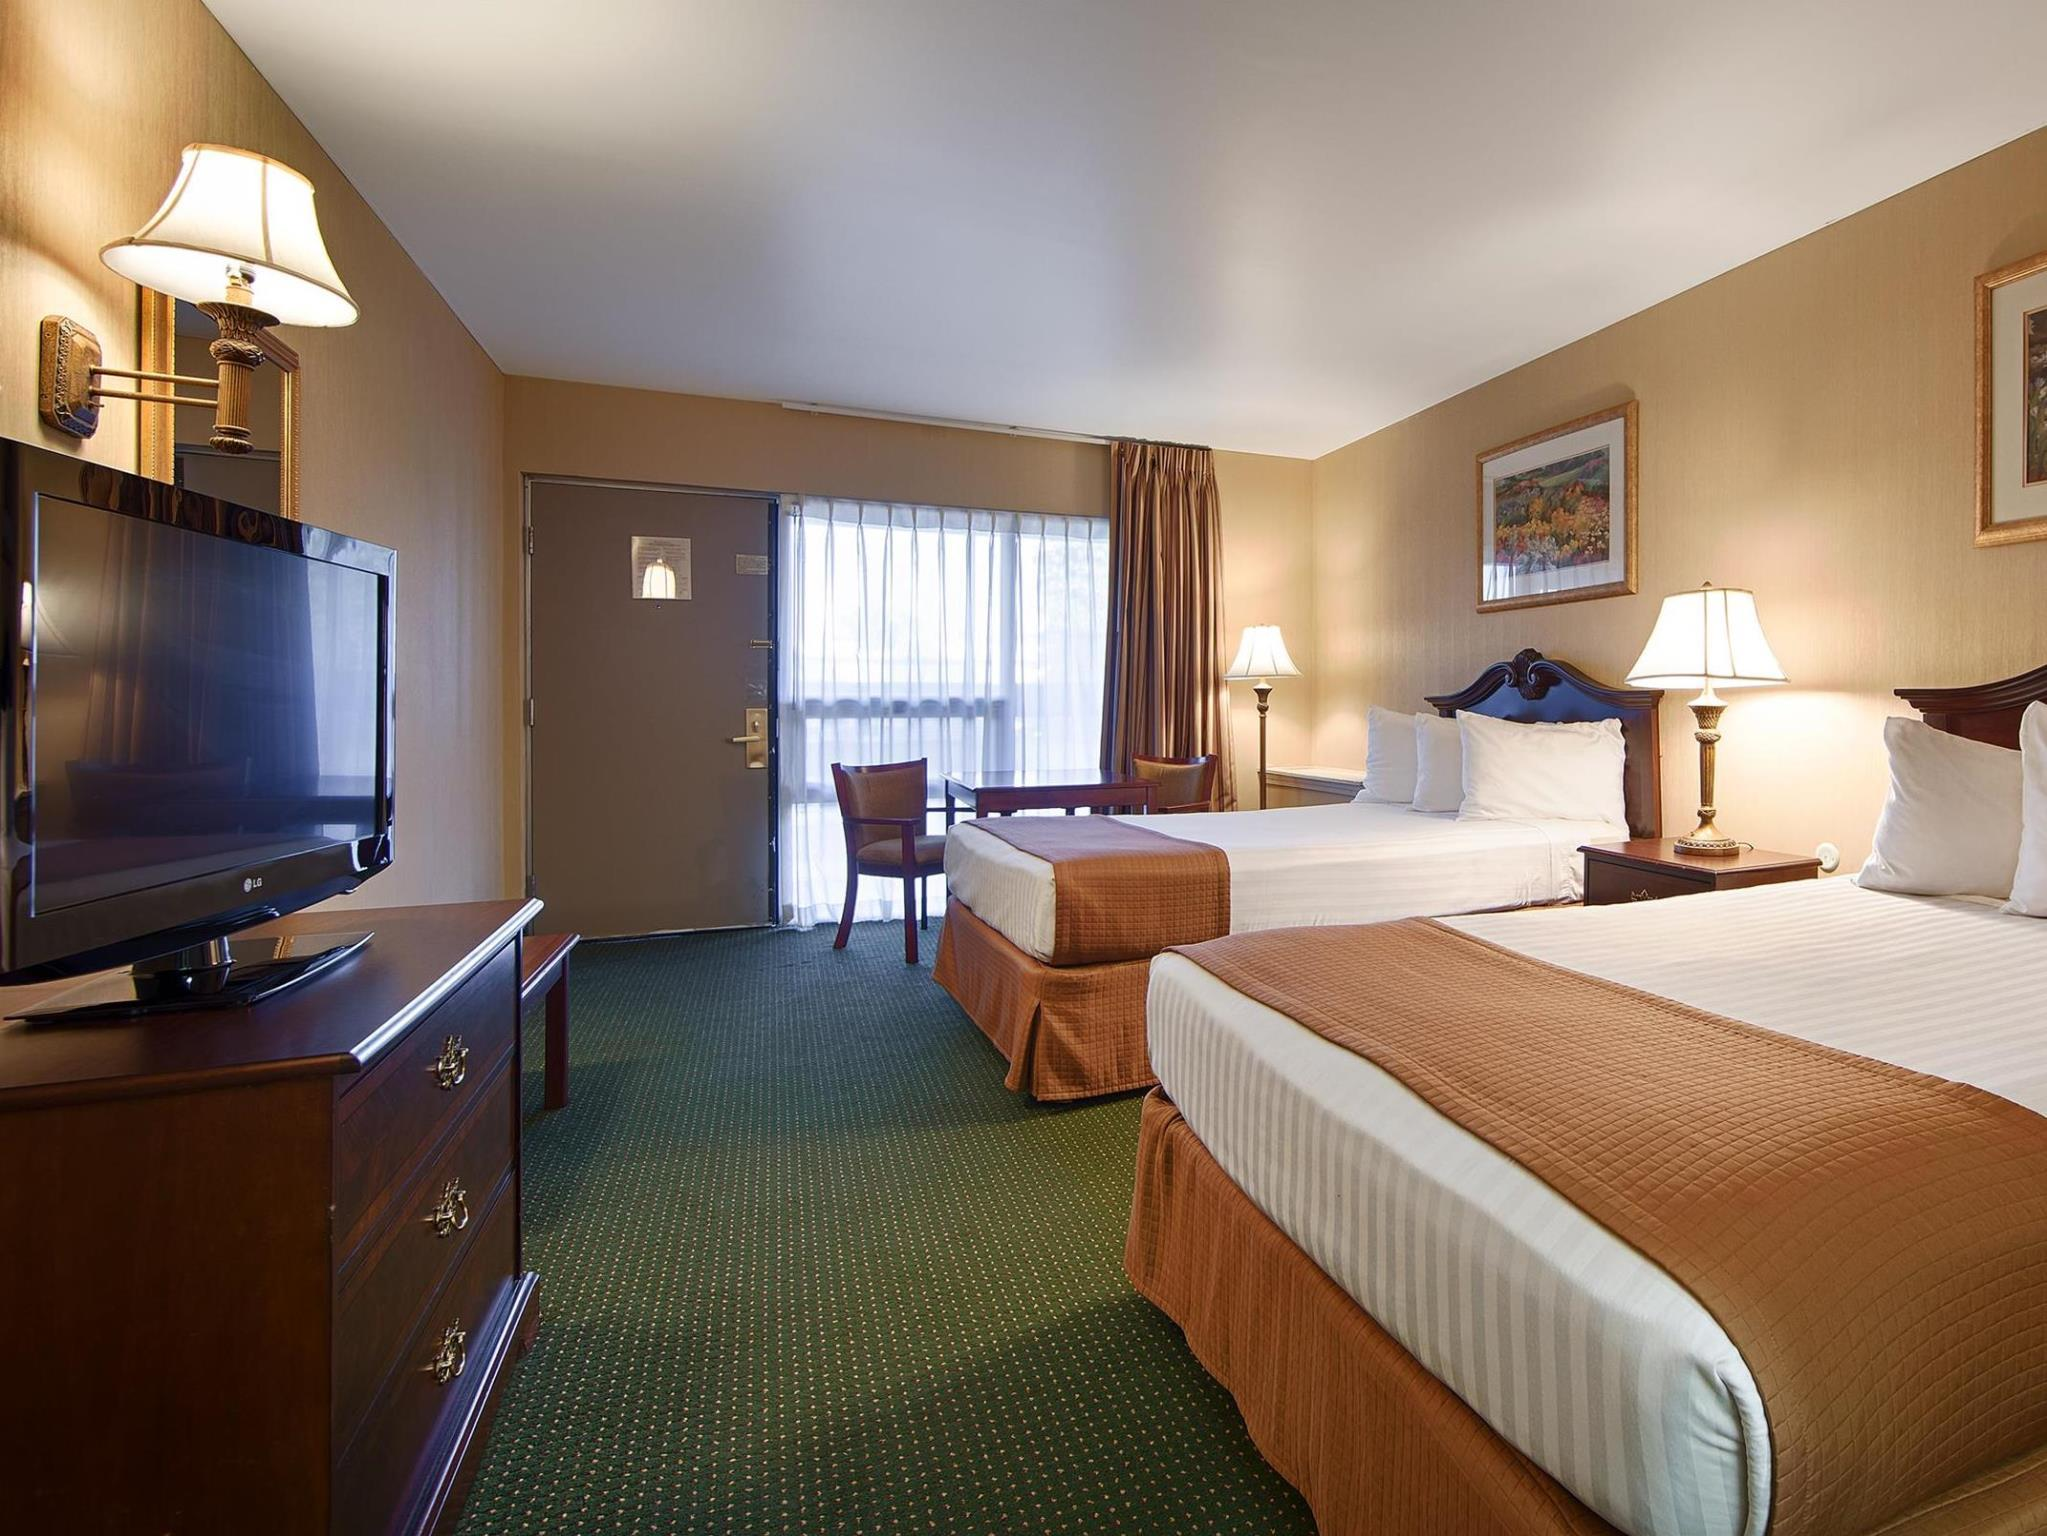 2 Double Beds Special Deal Best Western Gateway Adirondack Inn